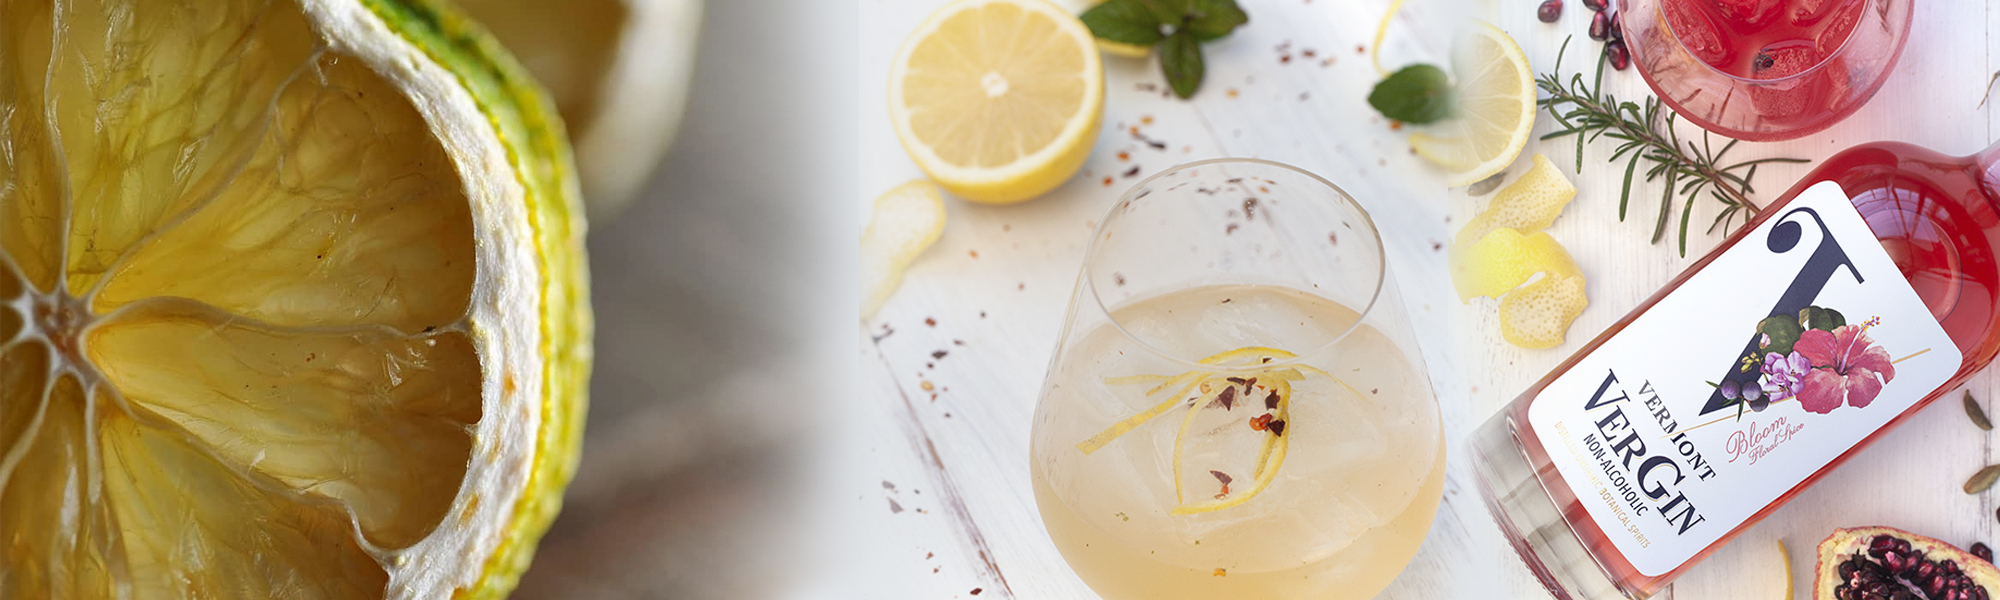 The Biggest Trend In Cocktails? Non-Alcoholic Drinks